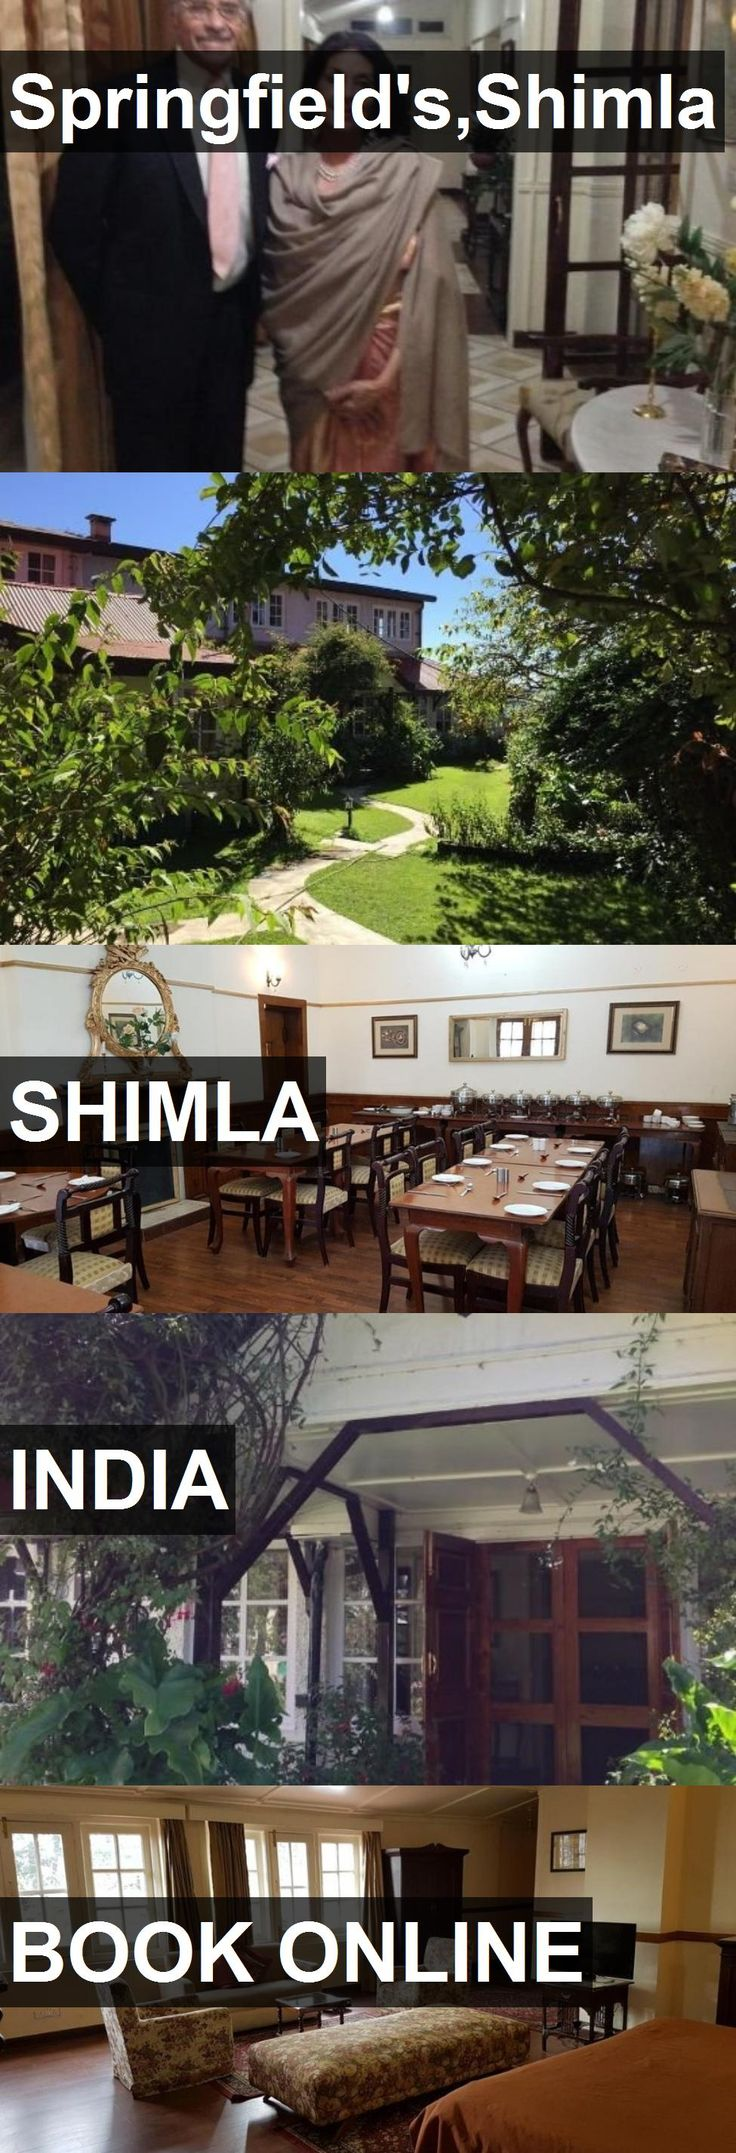 Hotel Springfield's,Shimla in Shimla, India. For more information, photos, reviews and best prices please follow the link. #India #Shimla #Springfield's,Shimla #hotel #travel #vacation